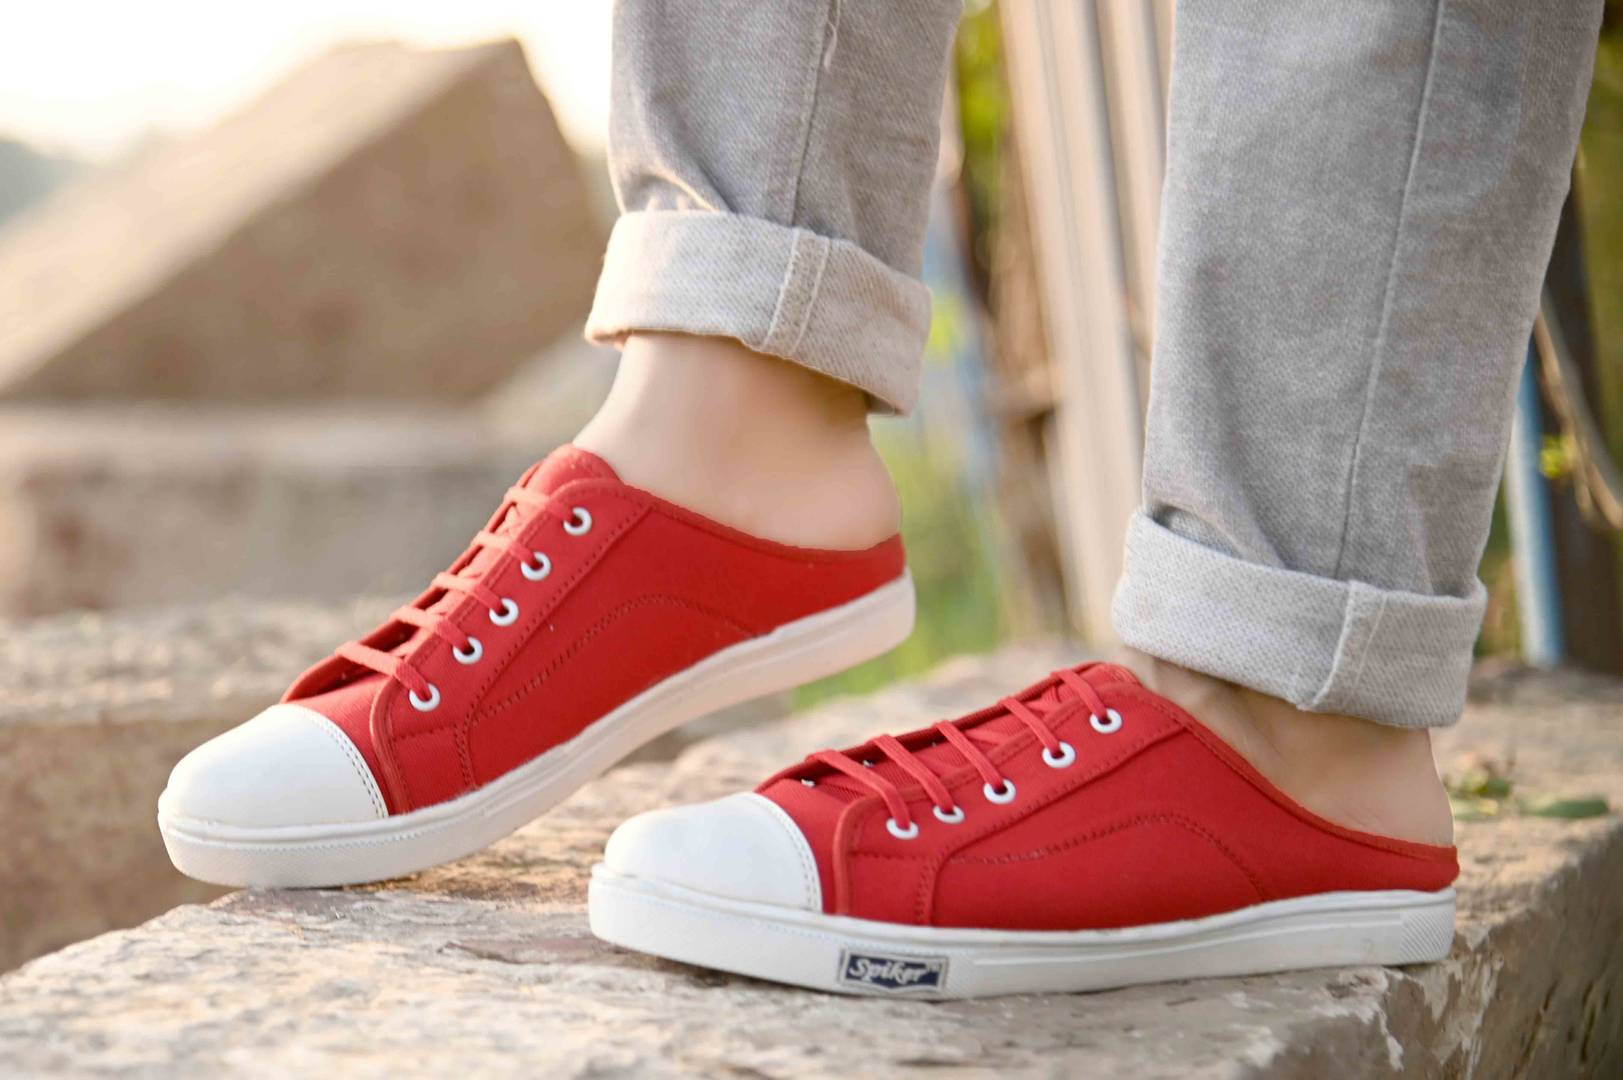 Men's Trendy Red Canvas Solid Slip-On Sneakers Shoes